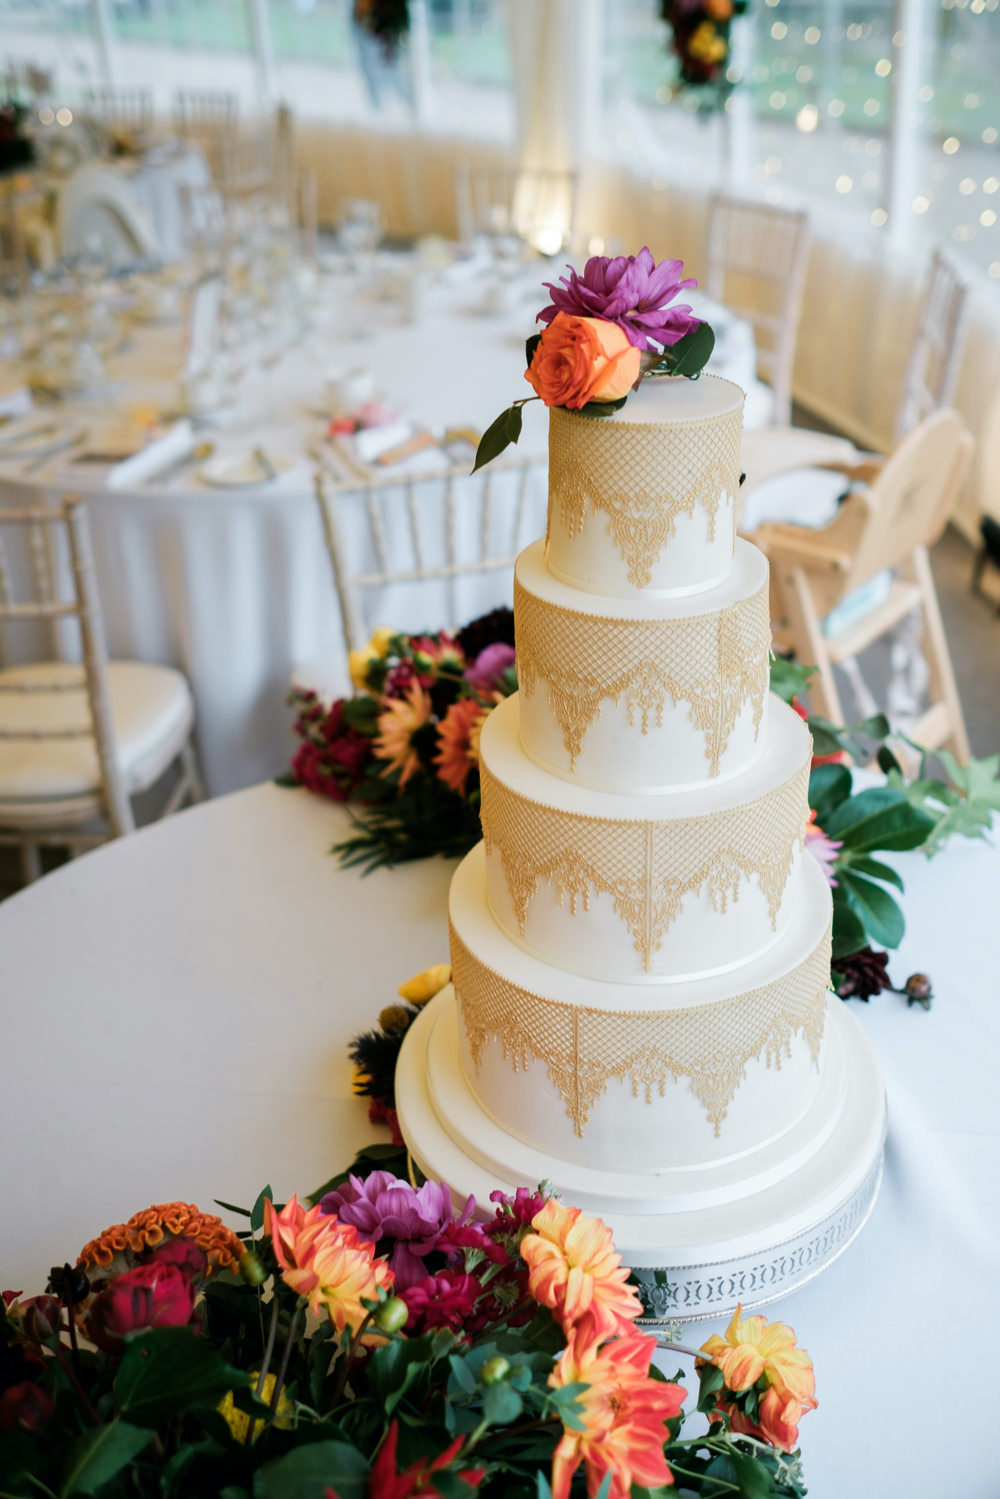 Gold Cake Tall Flowers Glenarm Castle Wedding Jonathan Ryder Photography